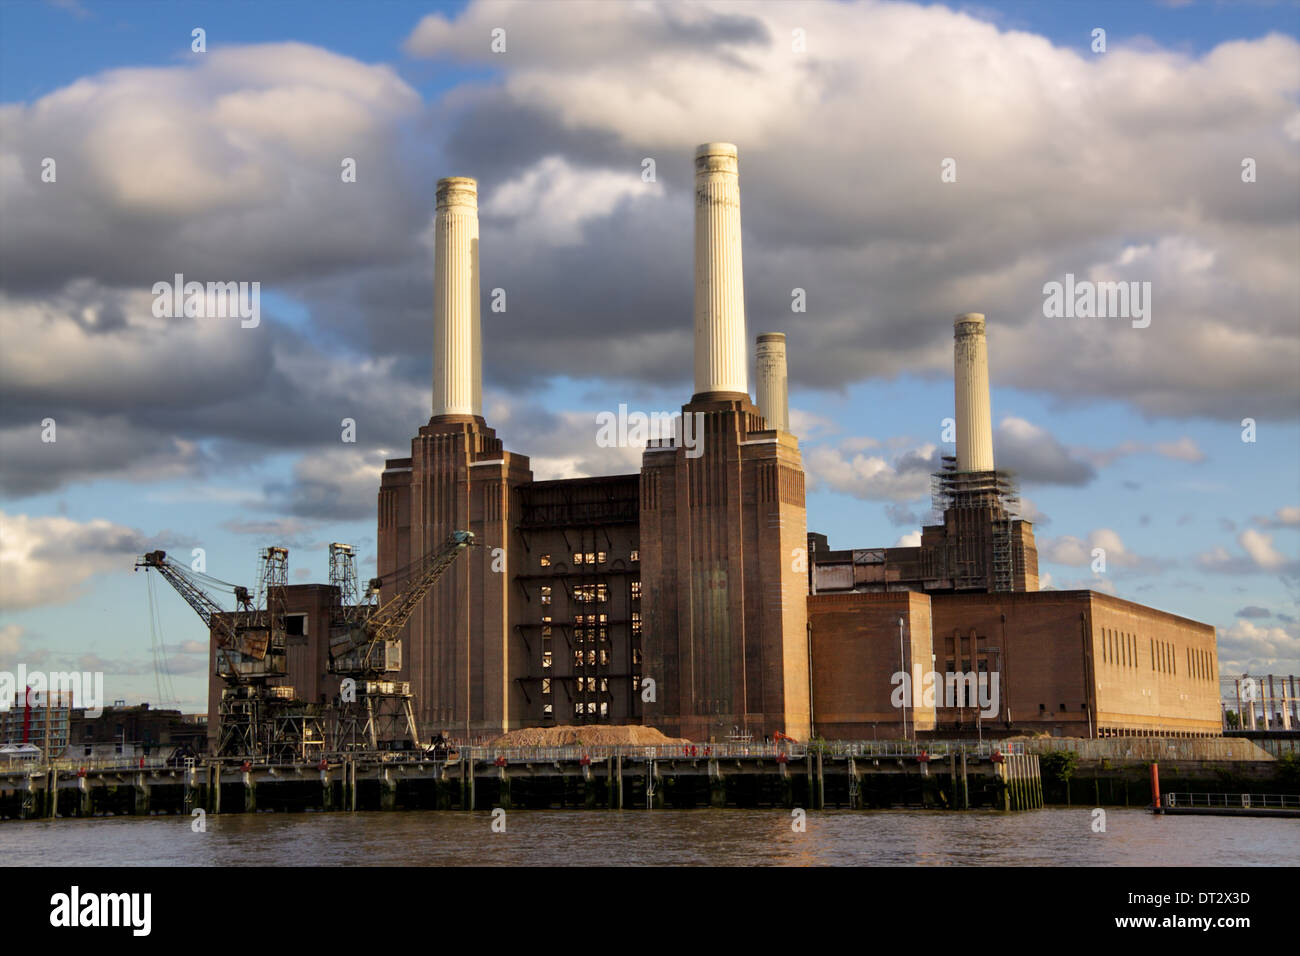 Abandoned powerstation in London, an iconic building of